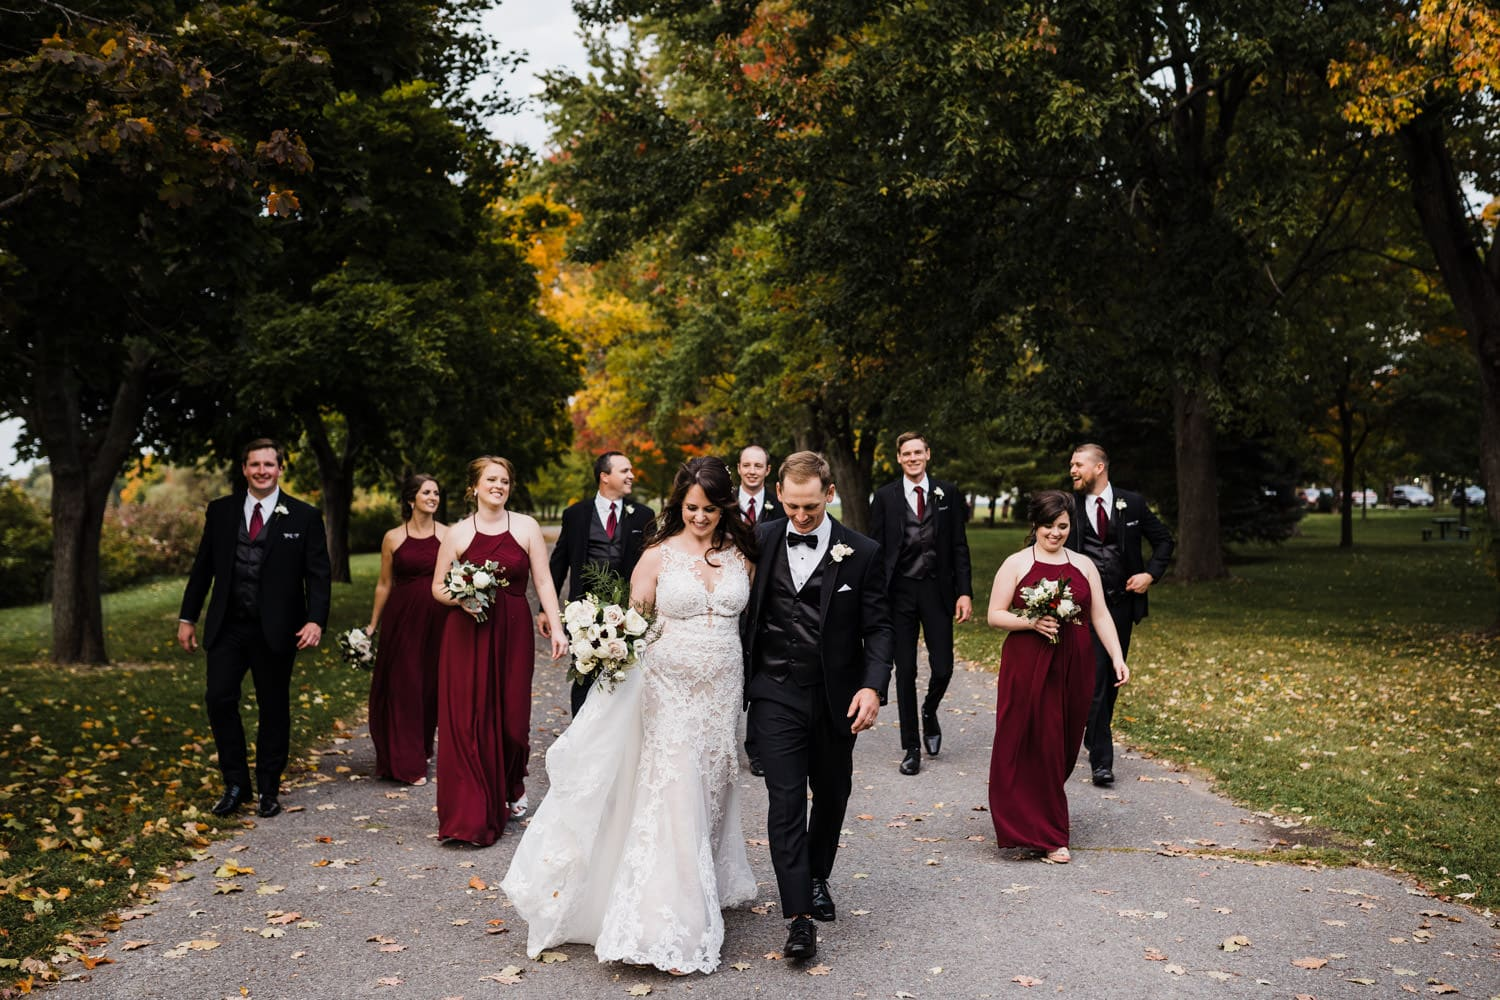 wedding party walks in a park together - the grand hotel wedding